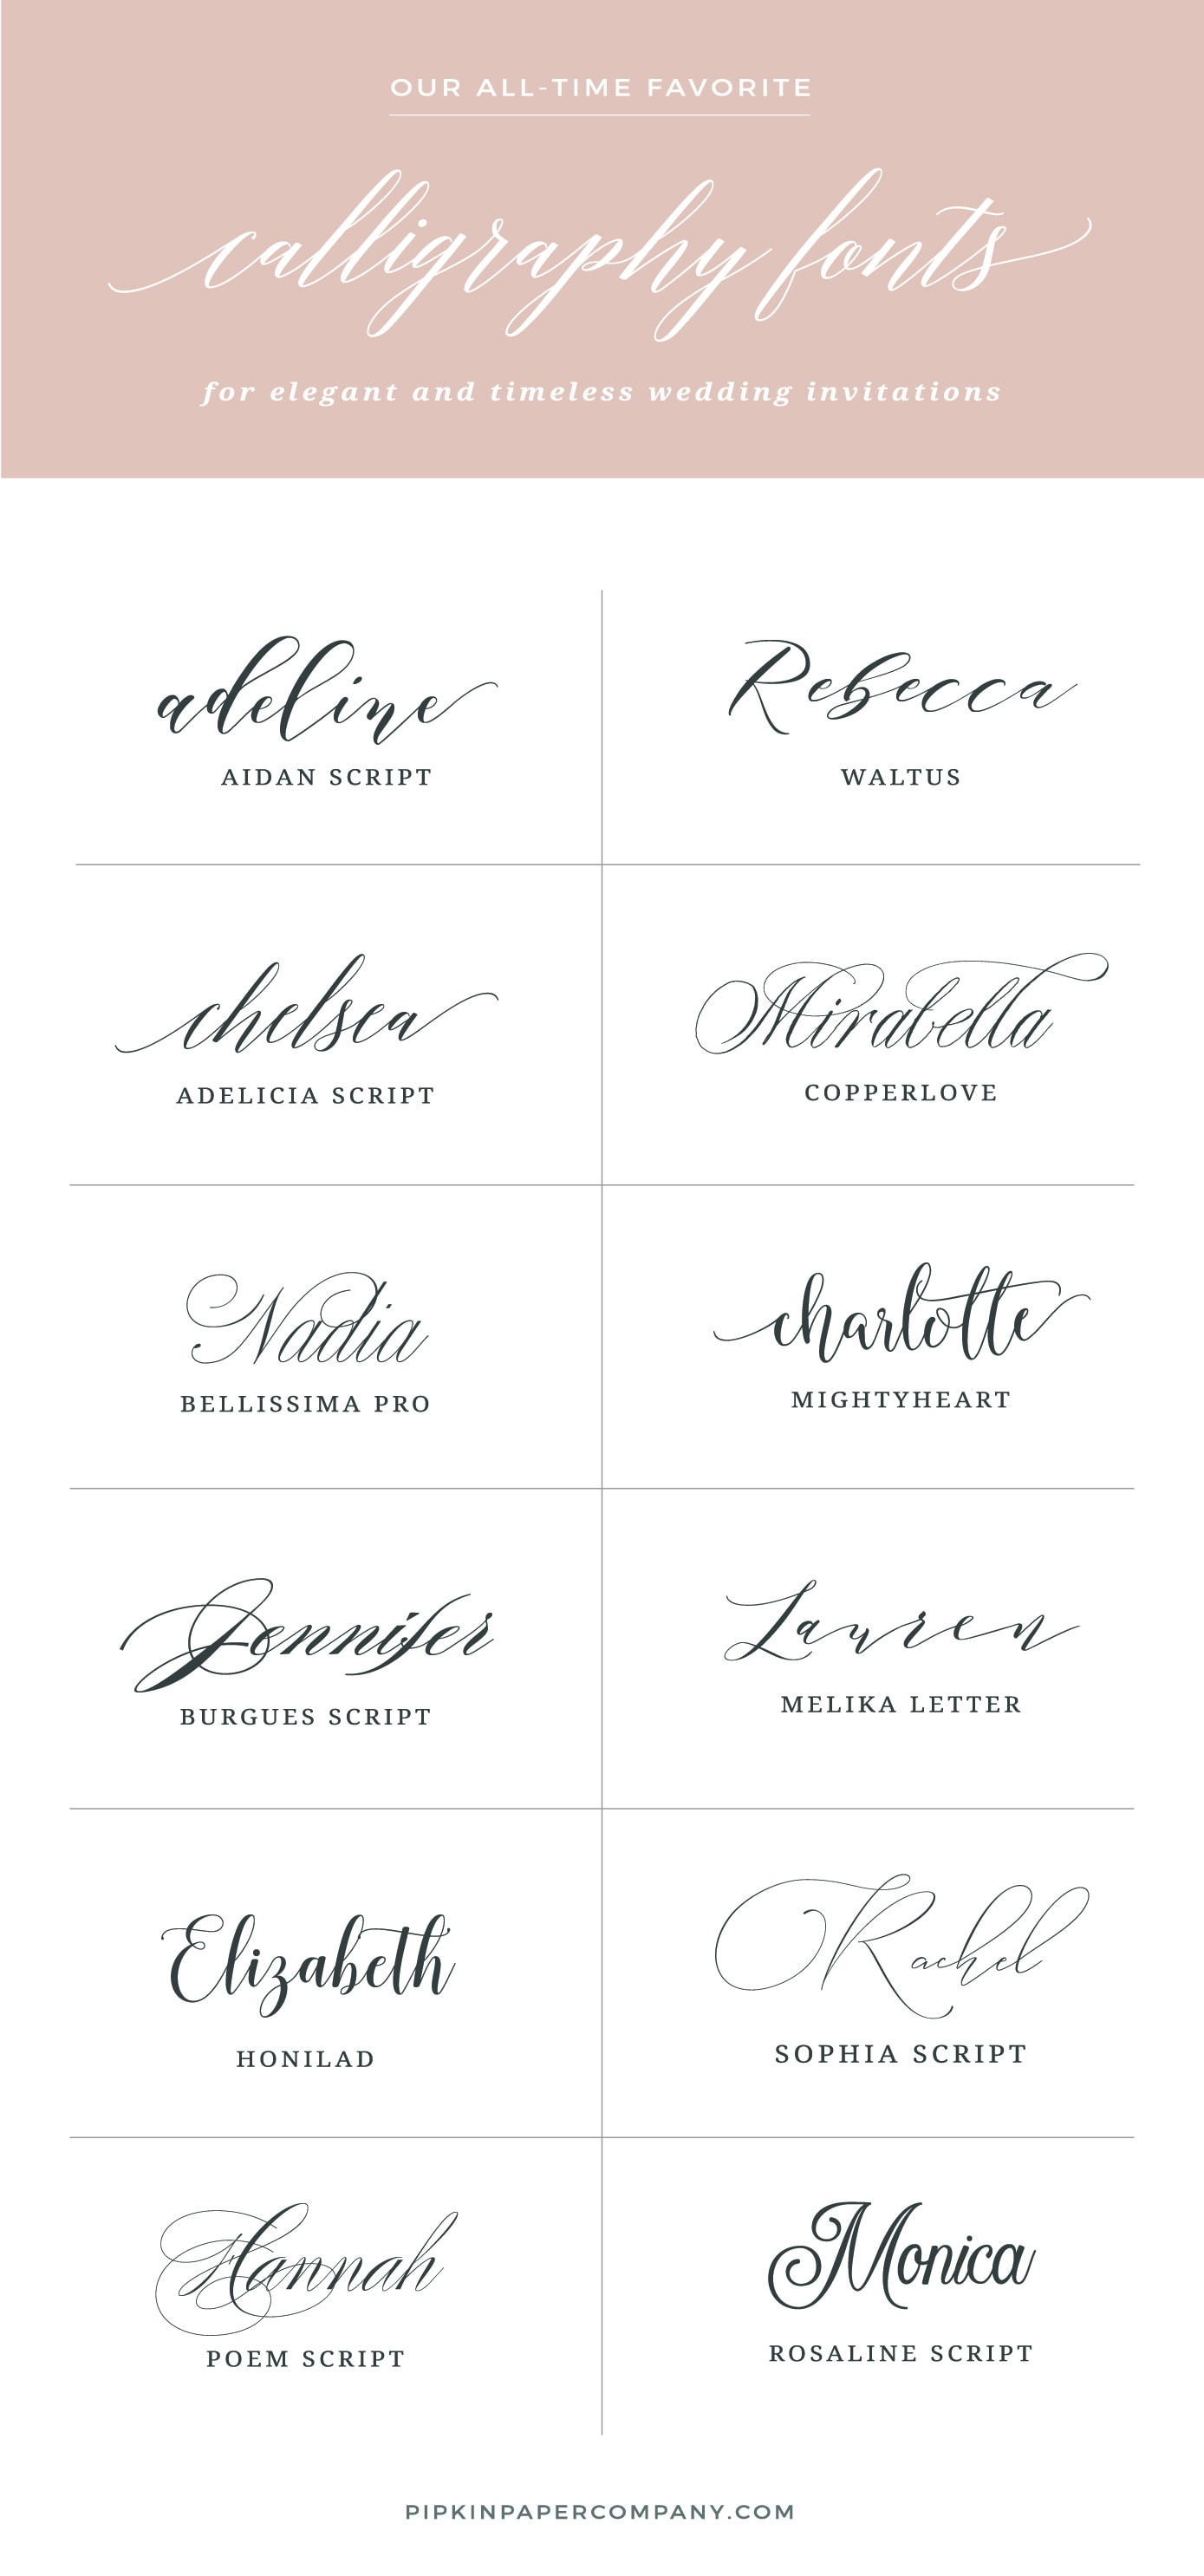 THE BEST FONTS FOR WEDDING INVITATIONS | Pipkin Paper Company